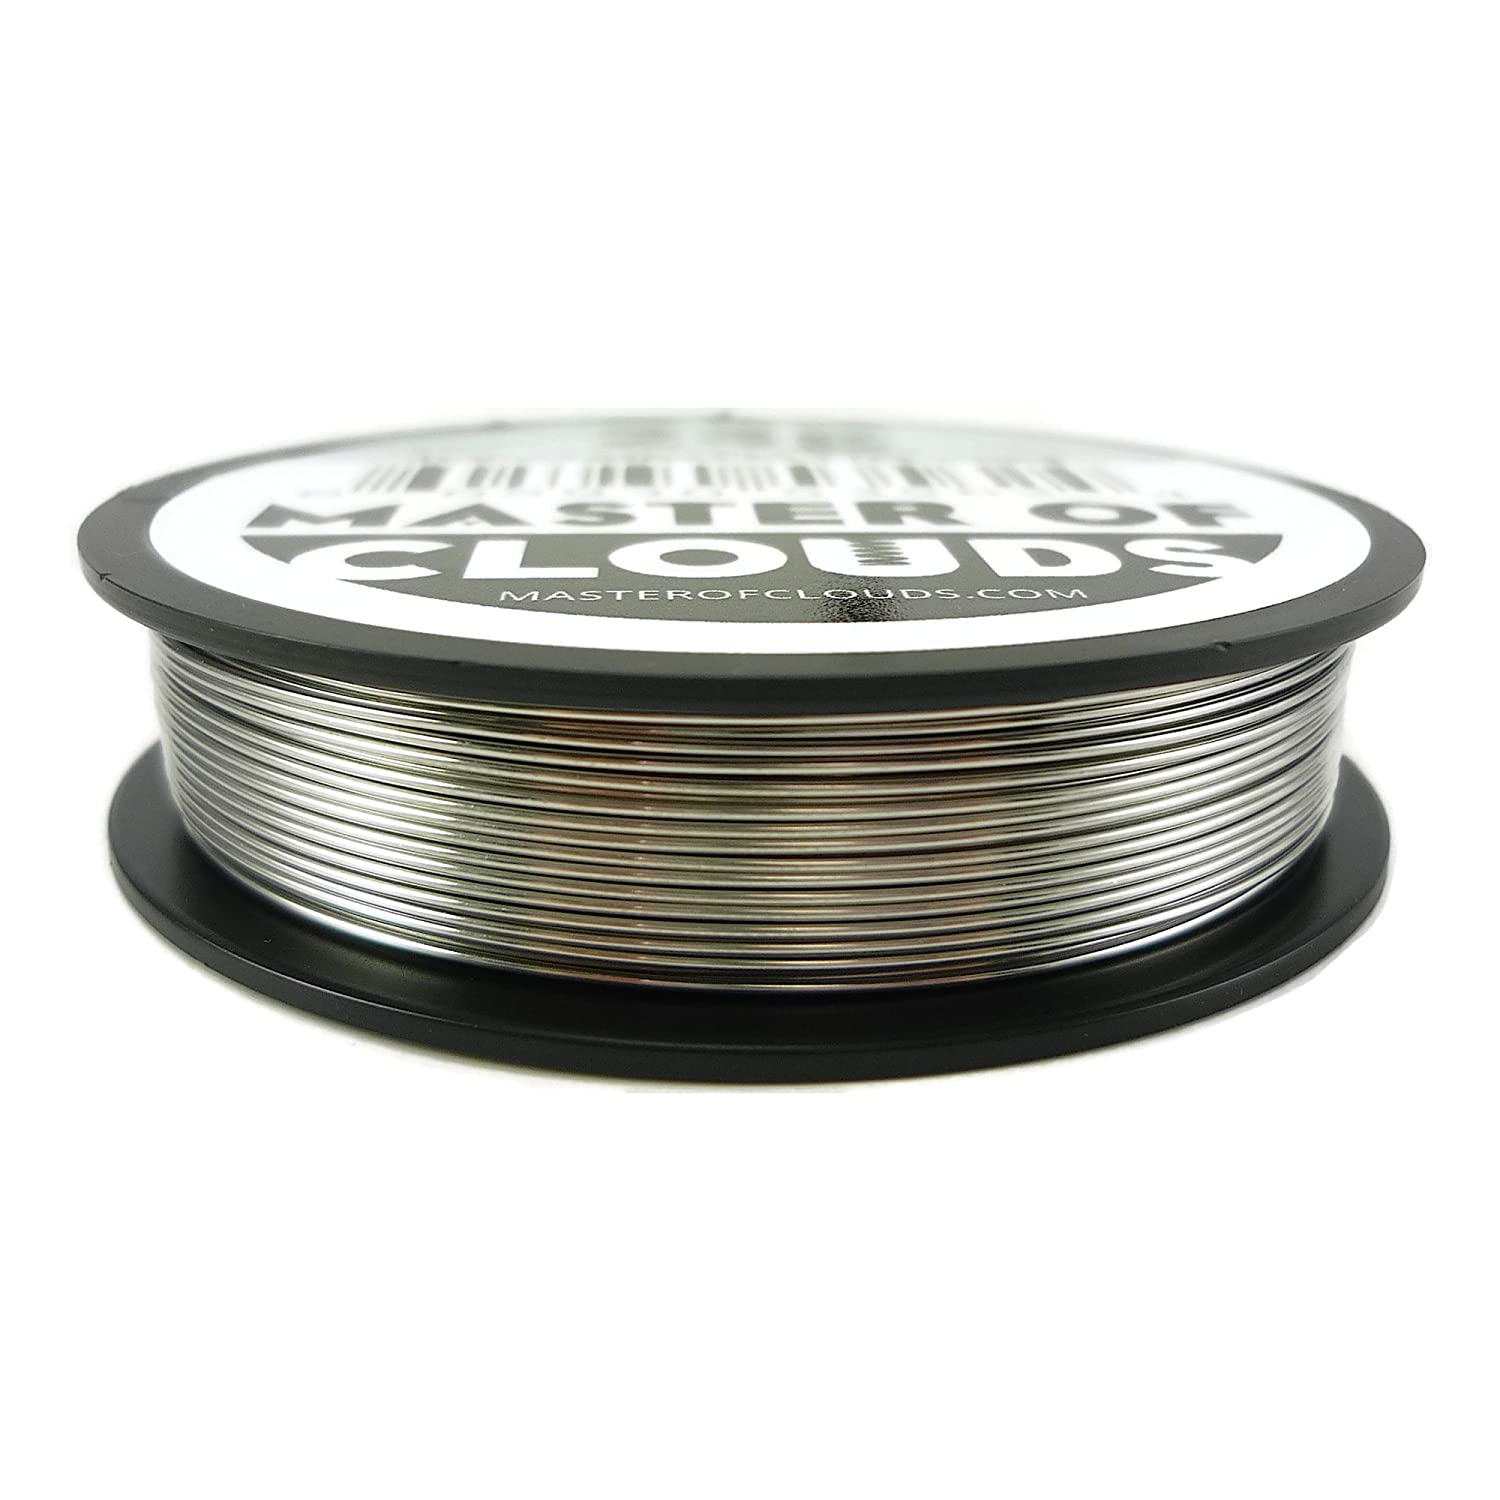 SS 316L - 100 ft. 24 Gauge AWG Stainless Steel Resistance Wire ...